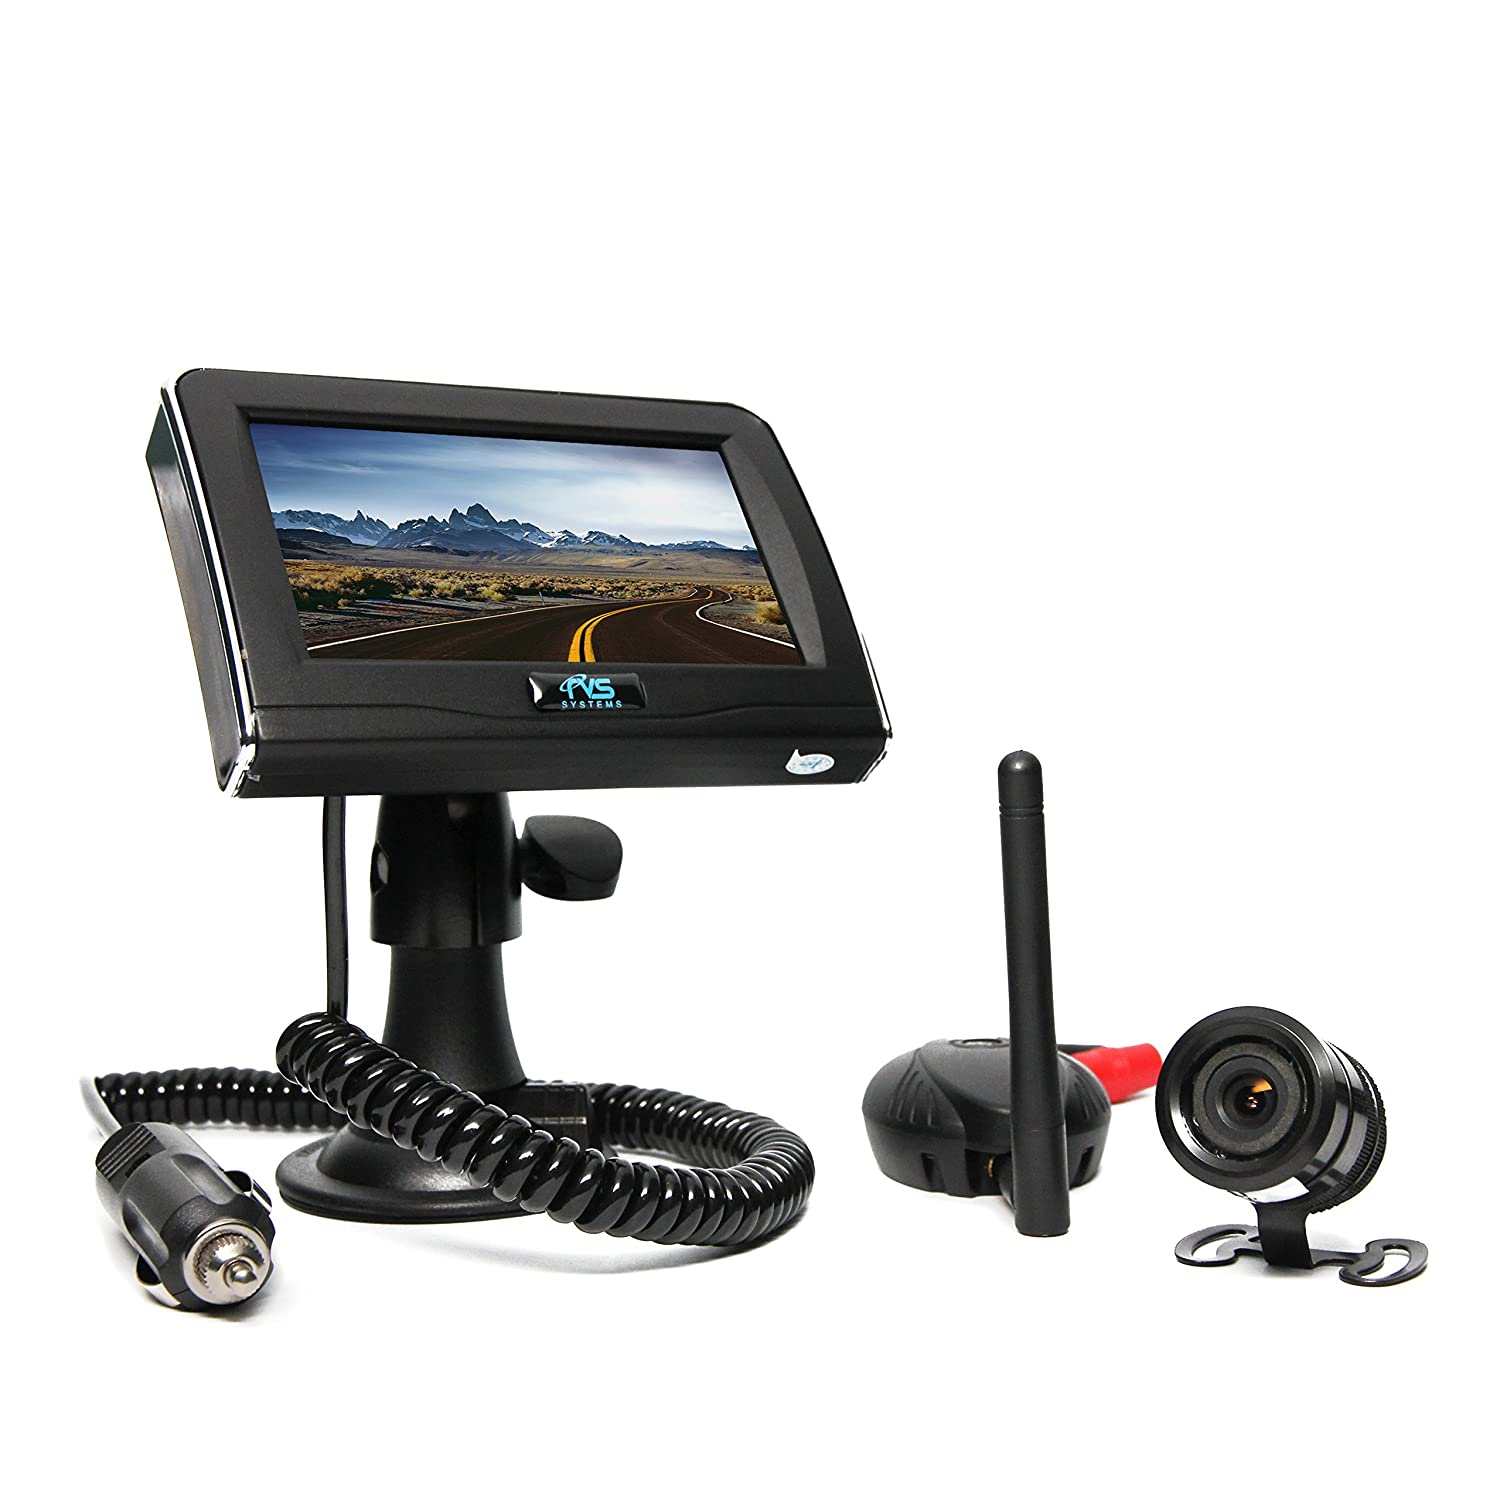 Amazon.com : Rear View Safety Wireless Backup Camera System with ...